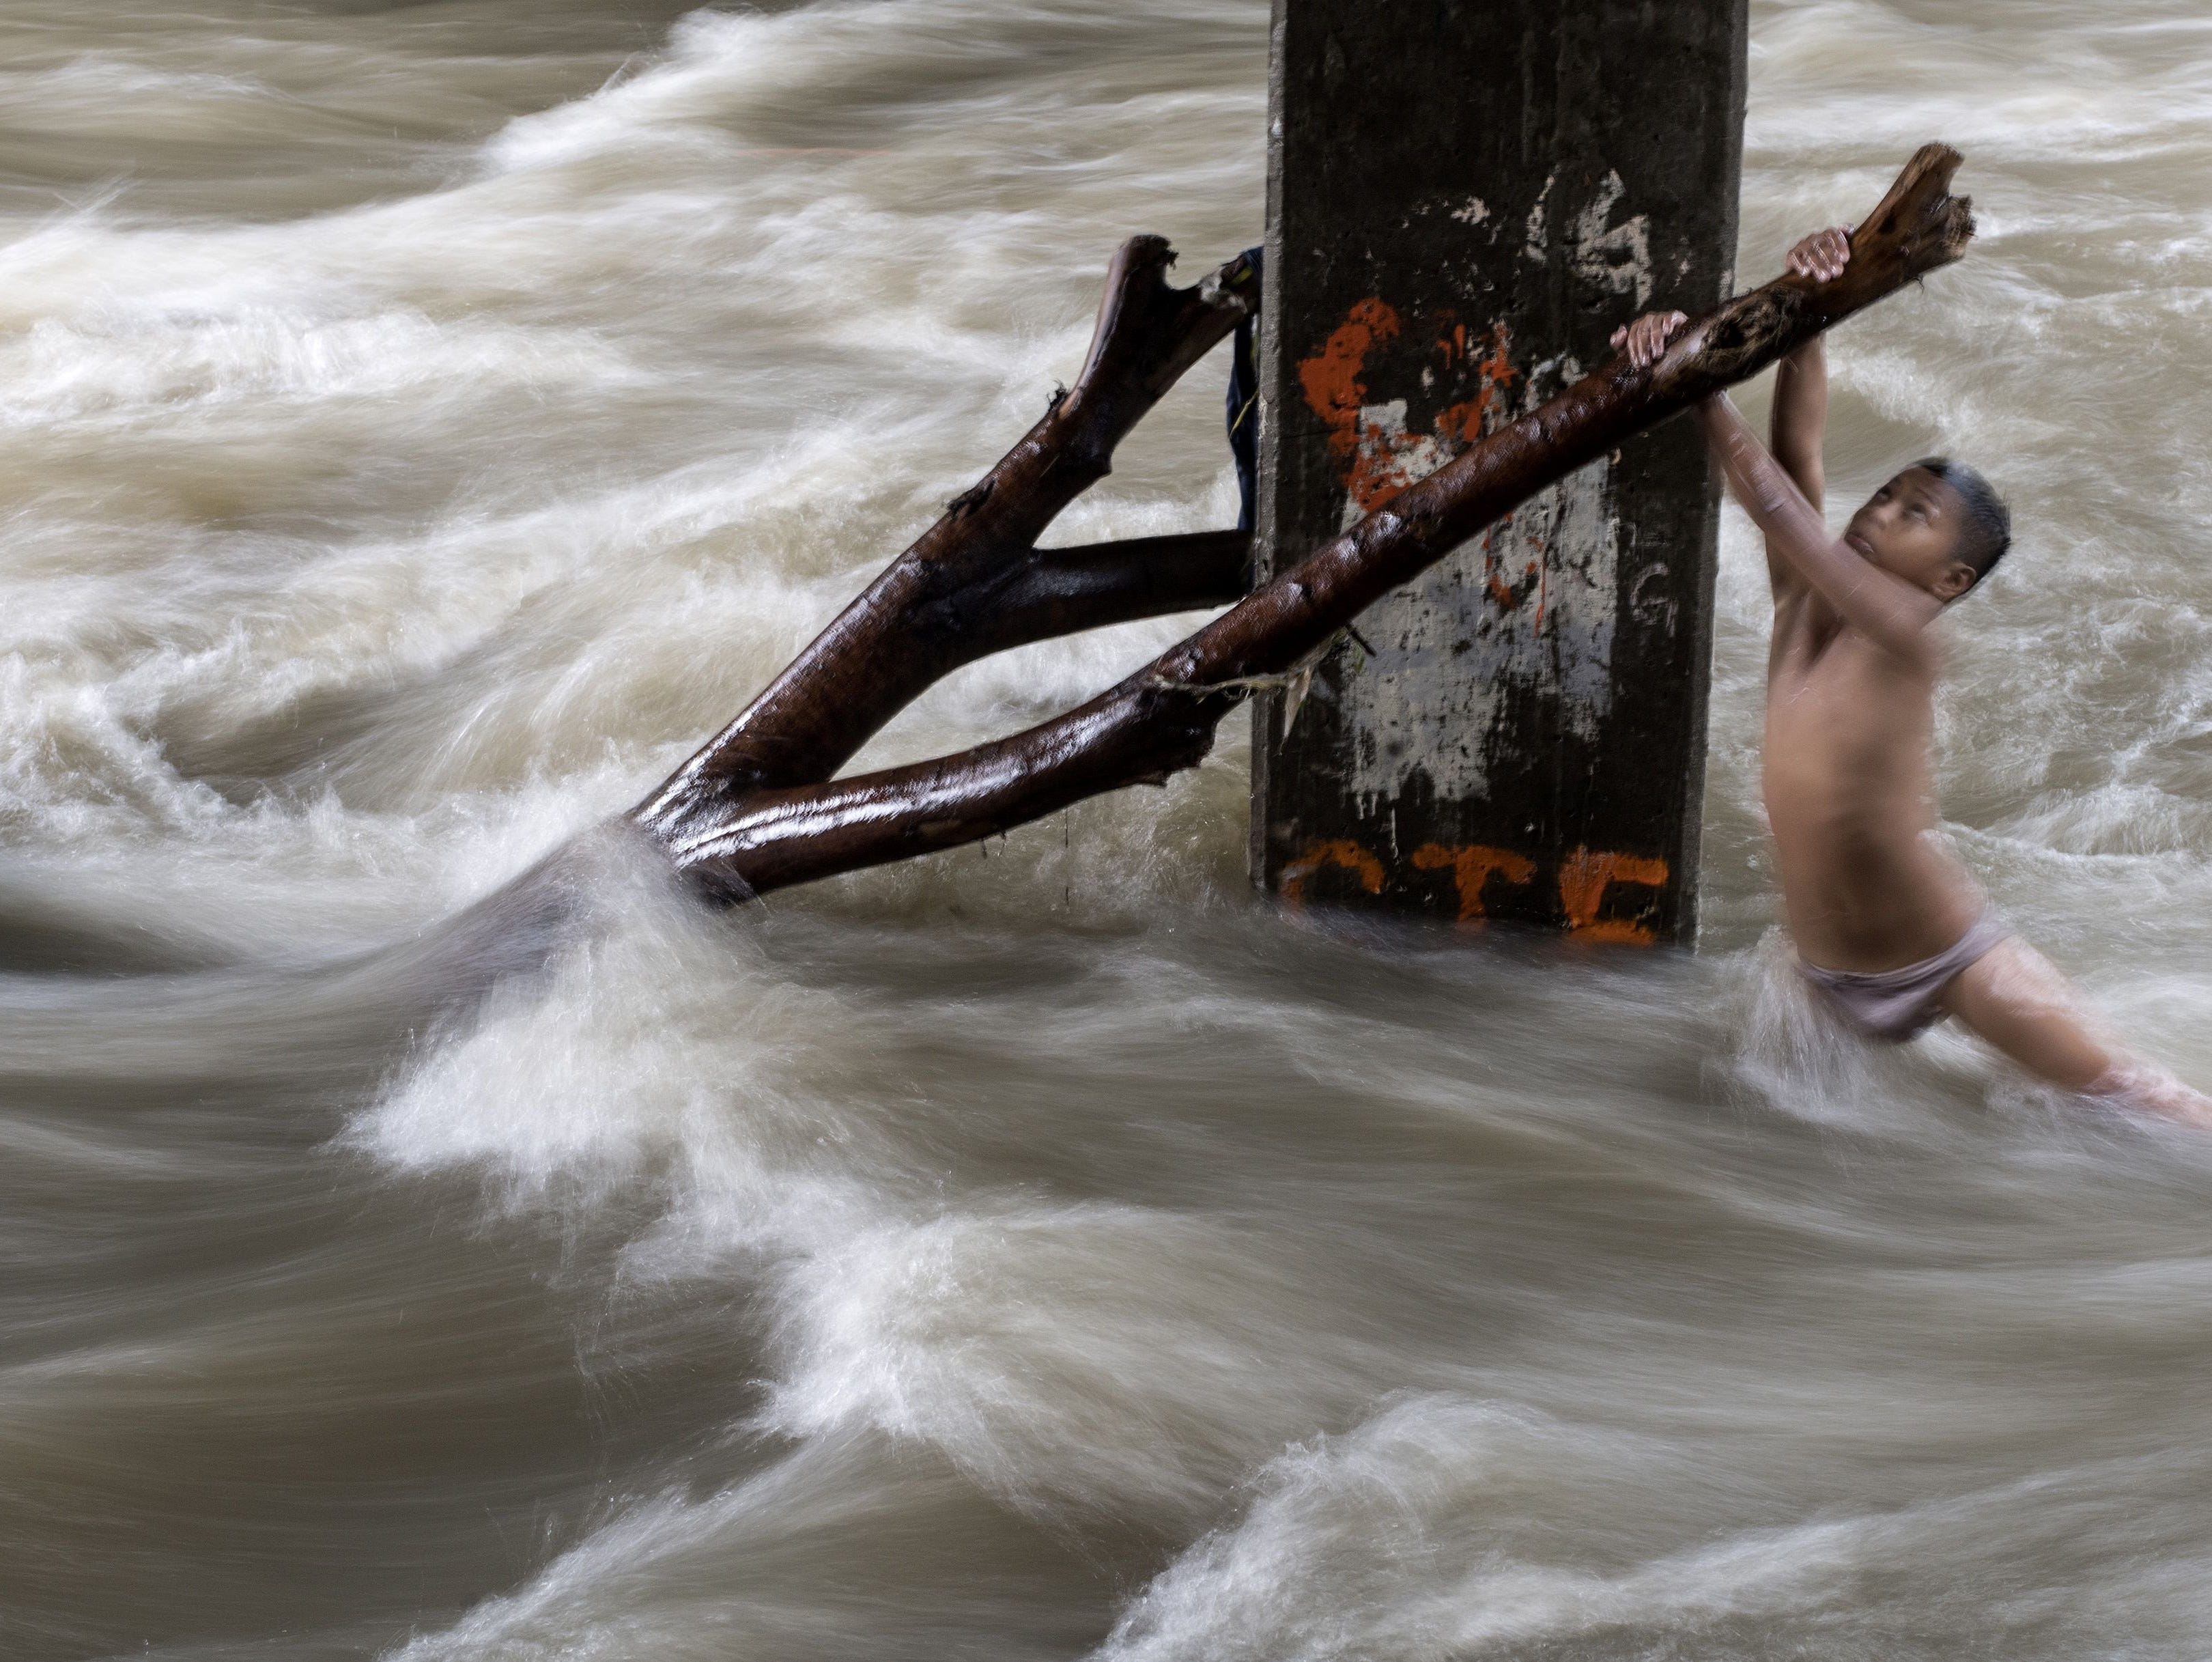 A boy holds a partially submerged branch as he plays in a swollen river caused by heavy rains under a bridge in Manila on June 11, 2018.